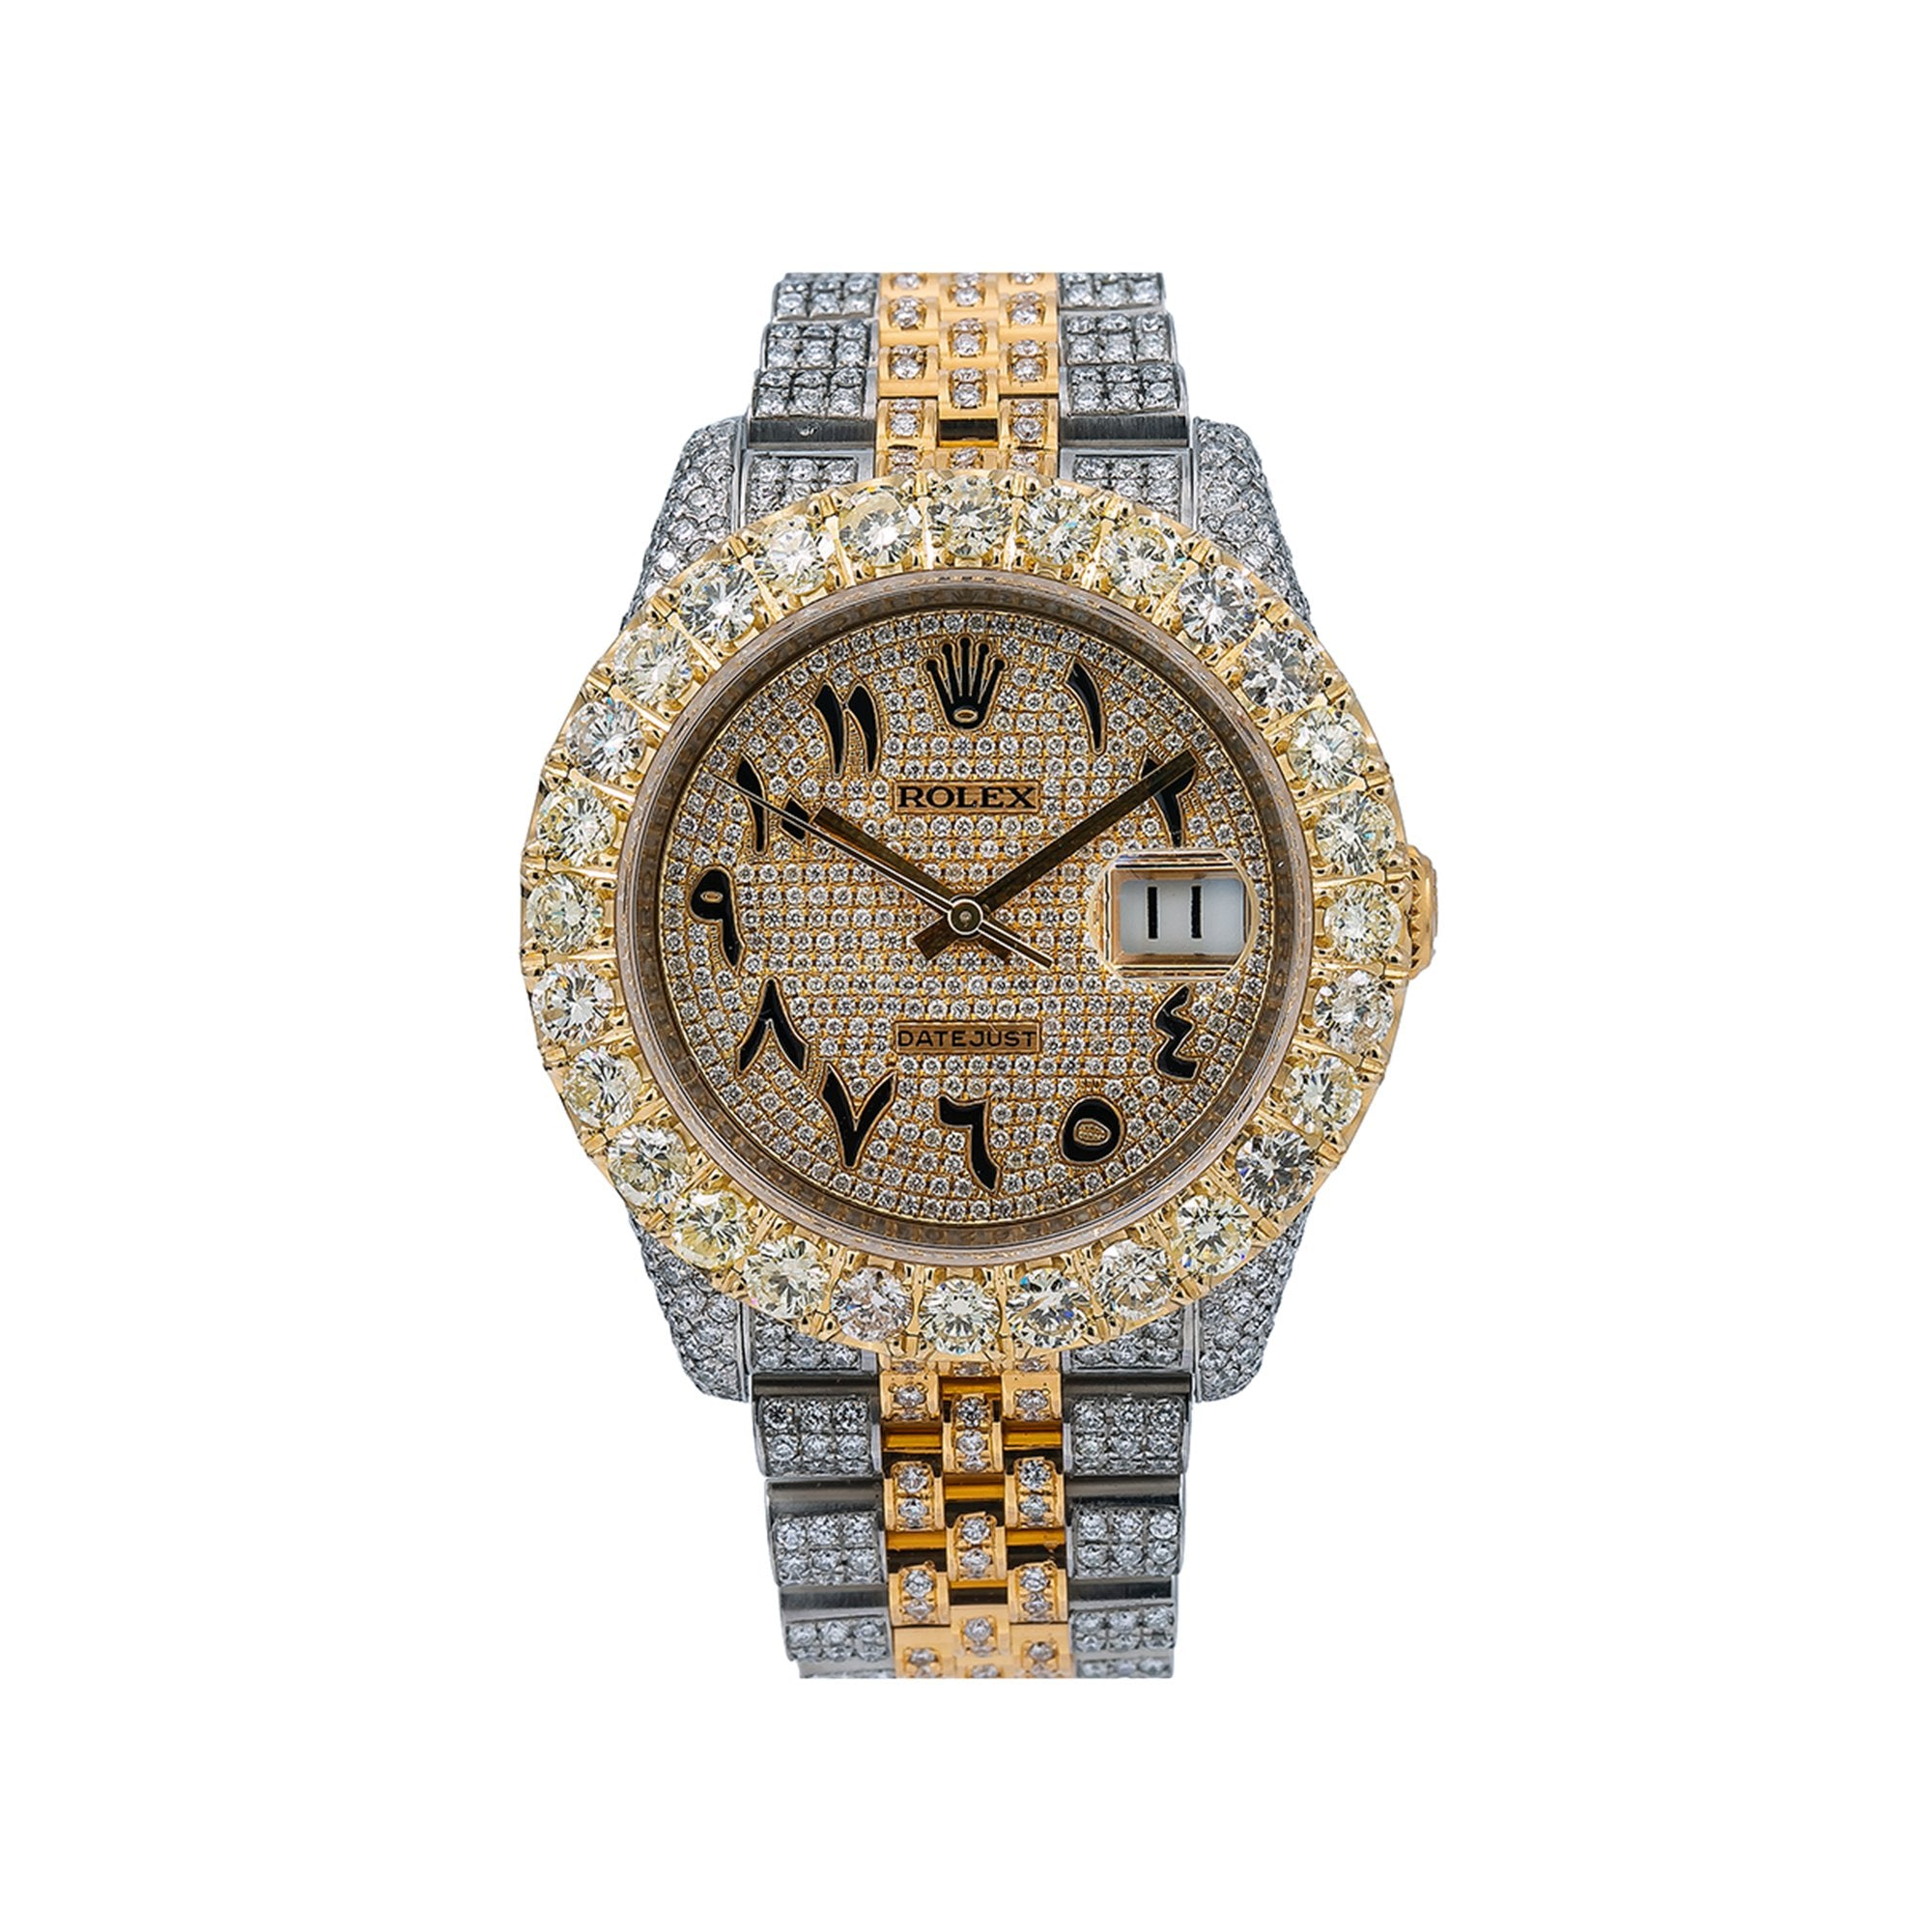 Rolex Datejust Diamond Watch, 116233 36mm, Champagne Diamond Dial With Two Tone Bracelet